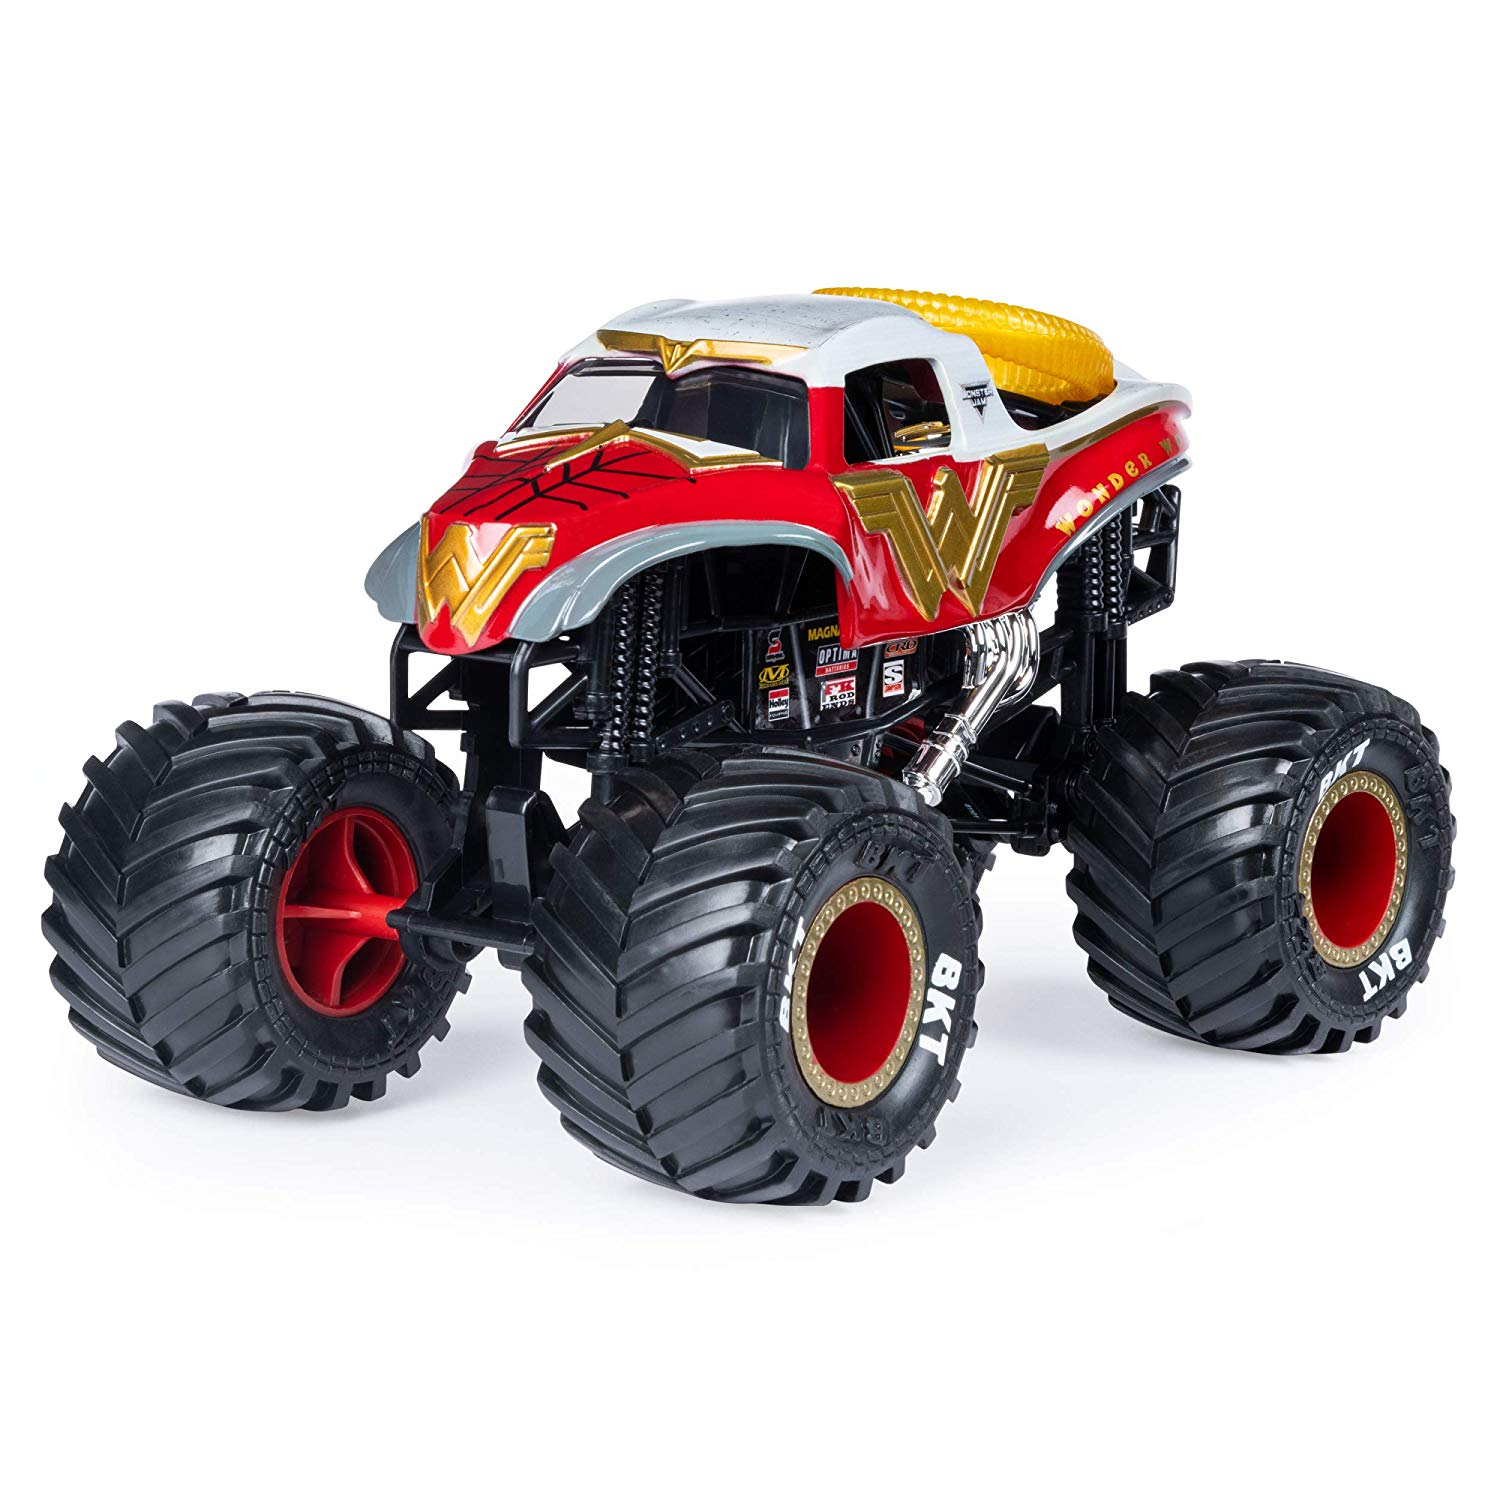 Monster Jam Diecast - Wonder Woman - Escala 1:24 - Original